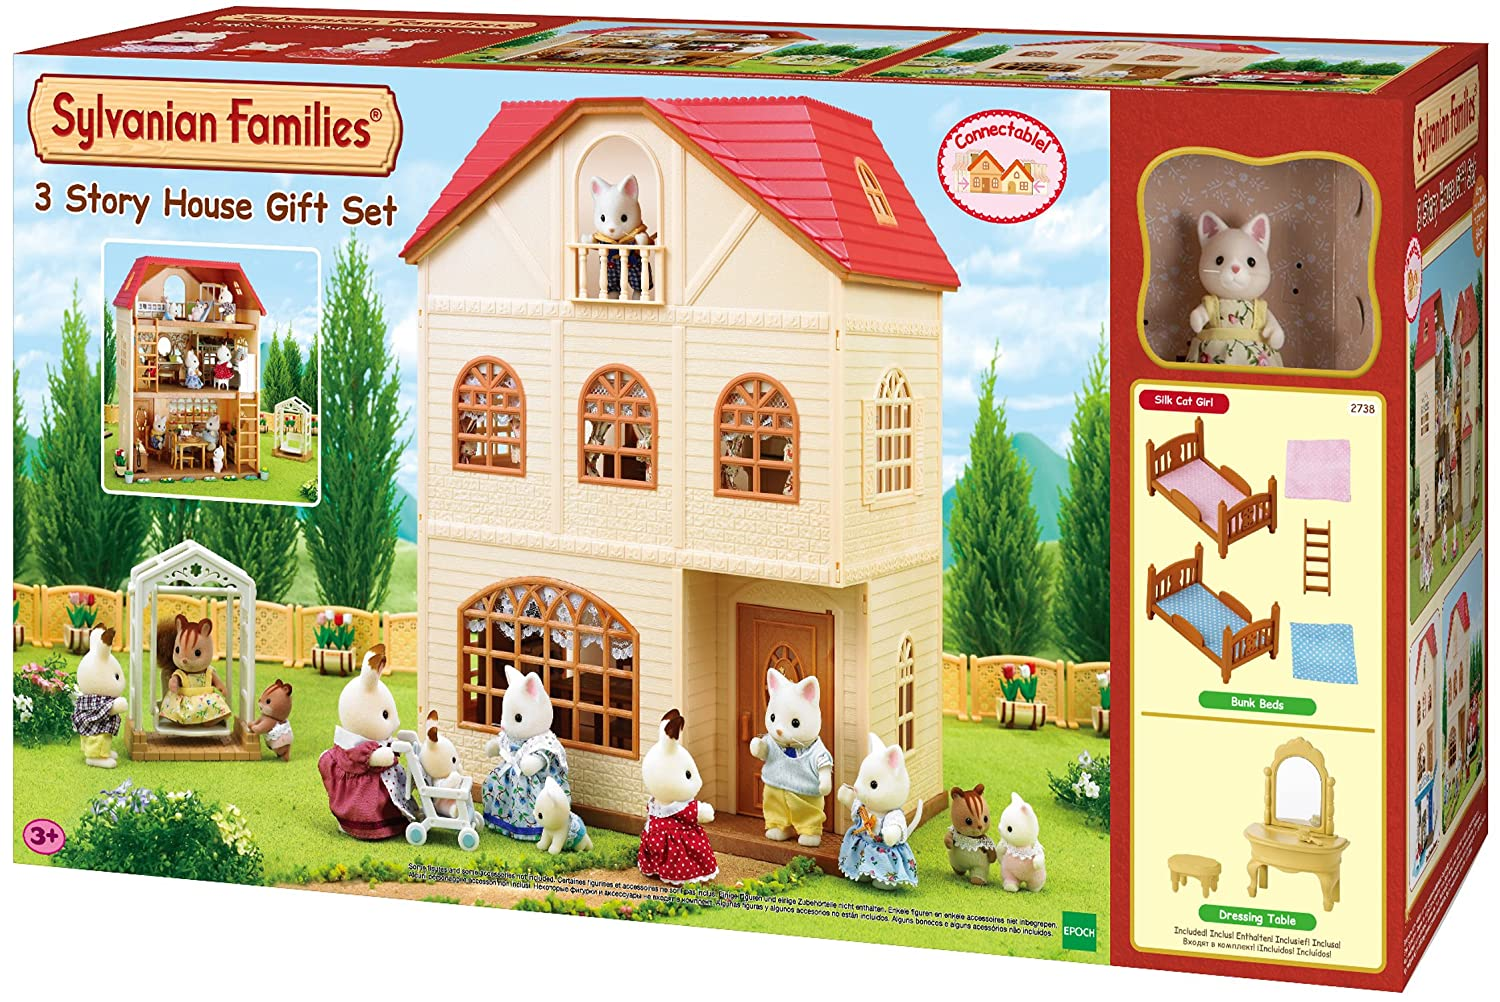 Sylvanian families 2738 dreistoeckiges haus set amazon co uk toys games